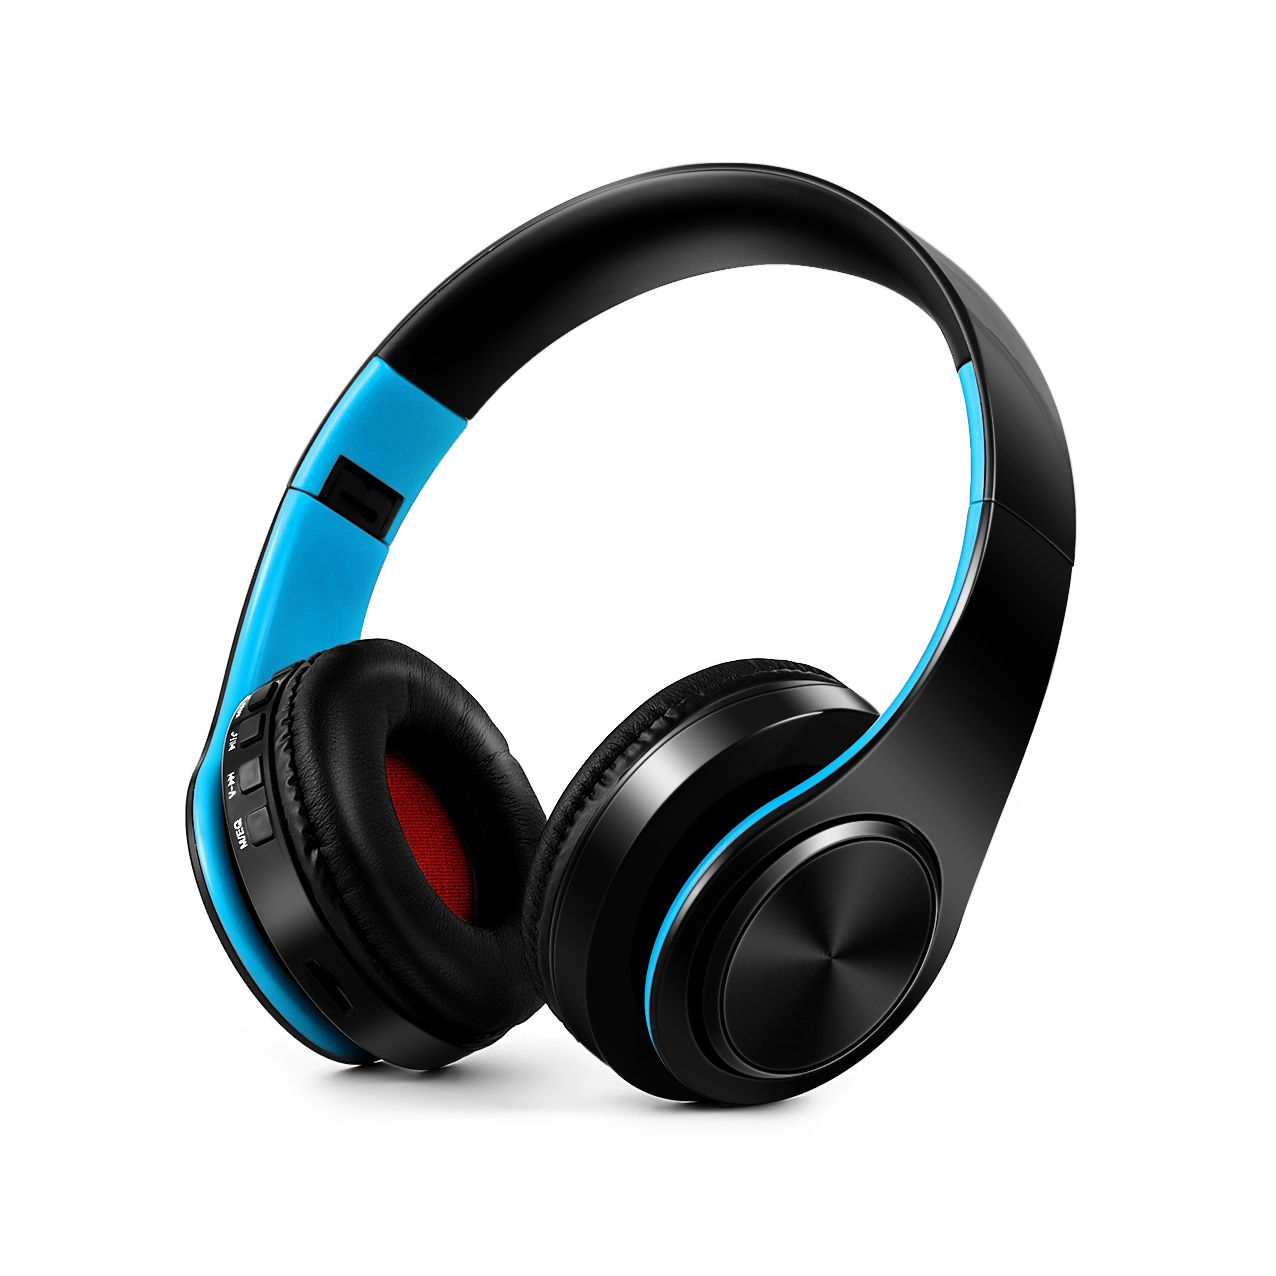 EASYIDEA Bluetooth Headphones Wireless Stereo Headsets Foldable Sport Headphone Support SD card With Mic Headphone For Phone PC